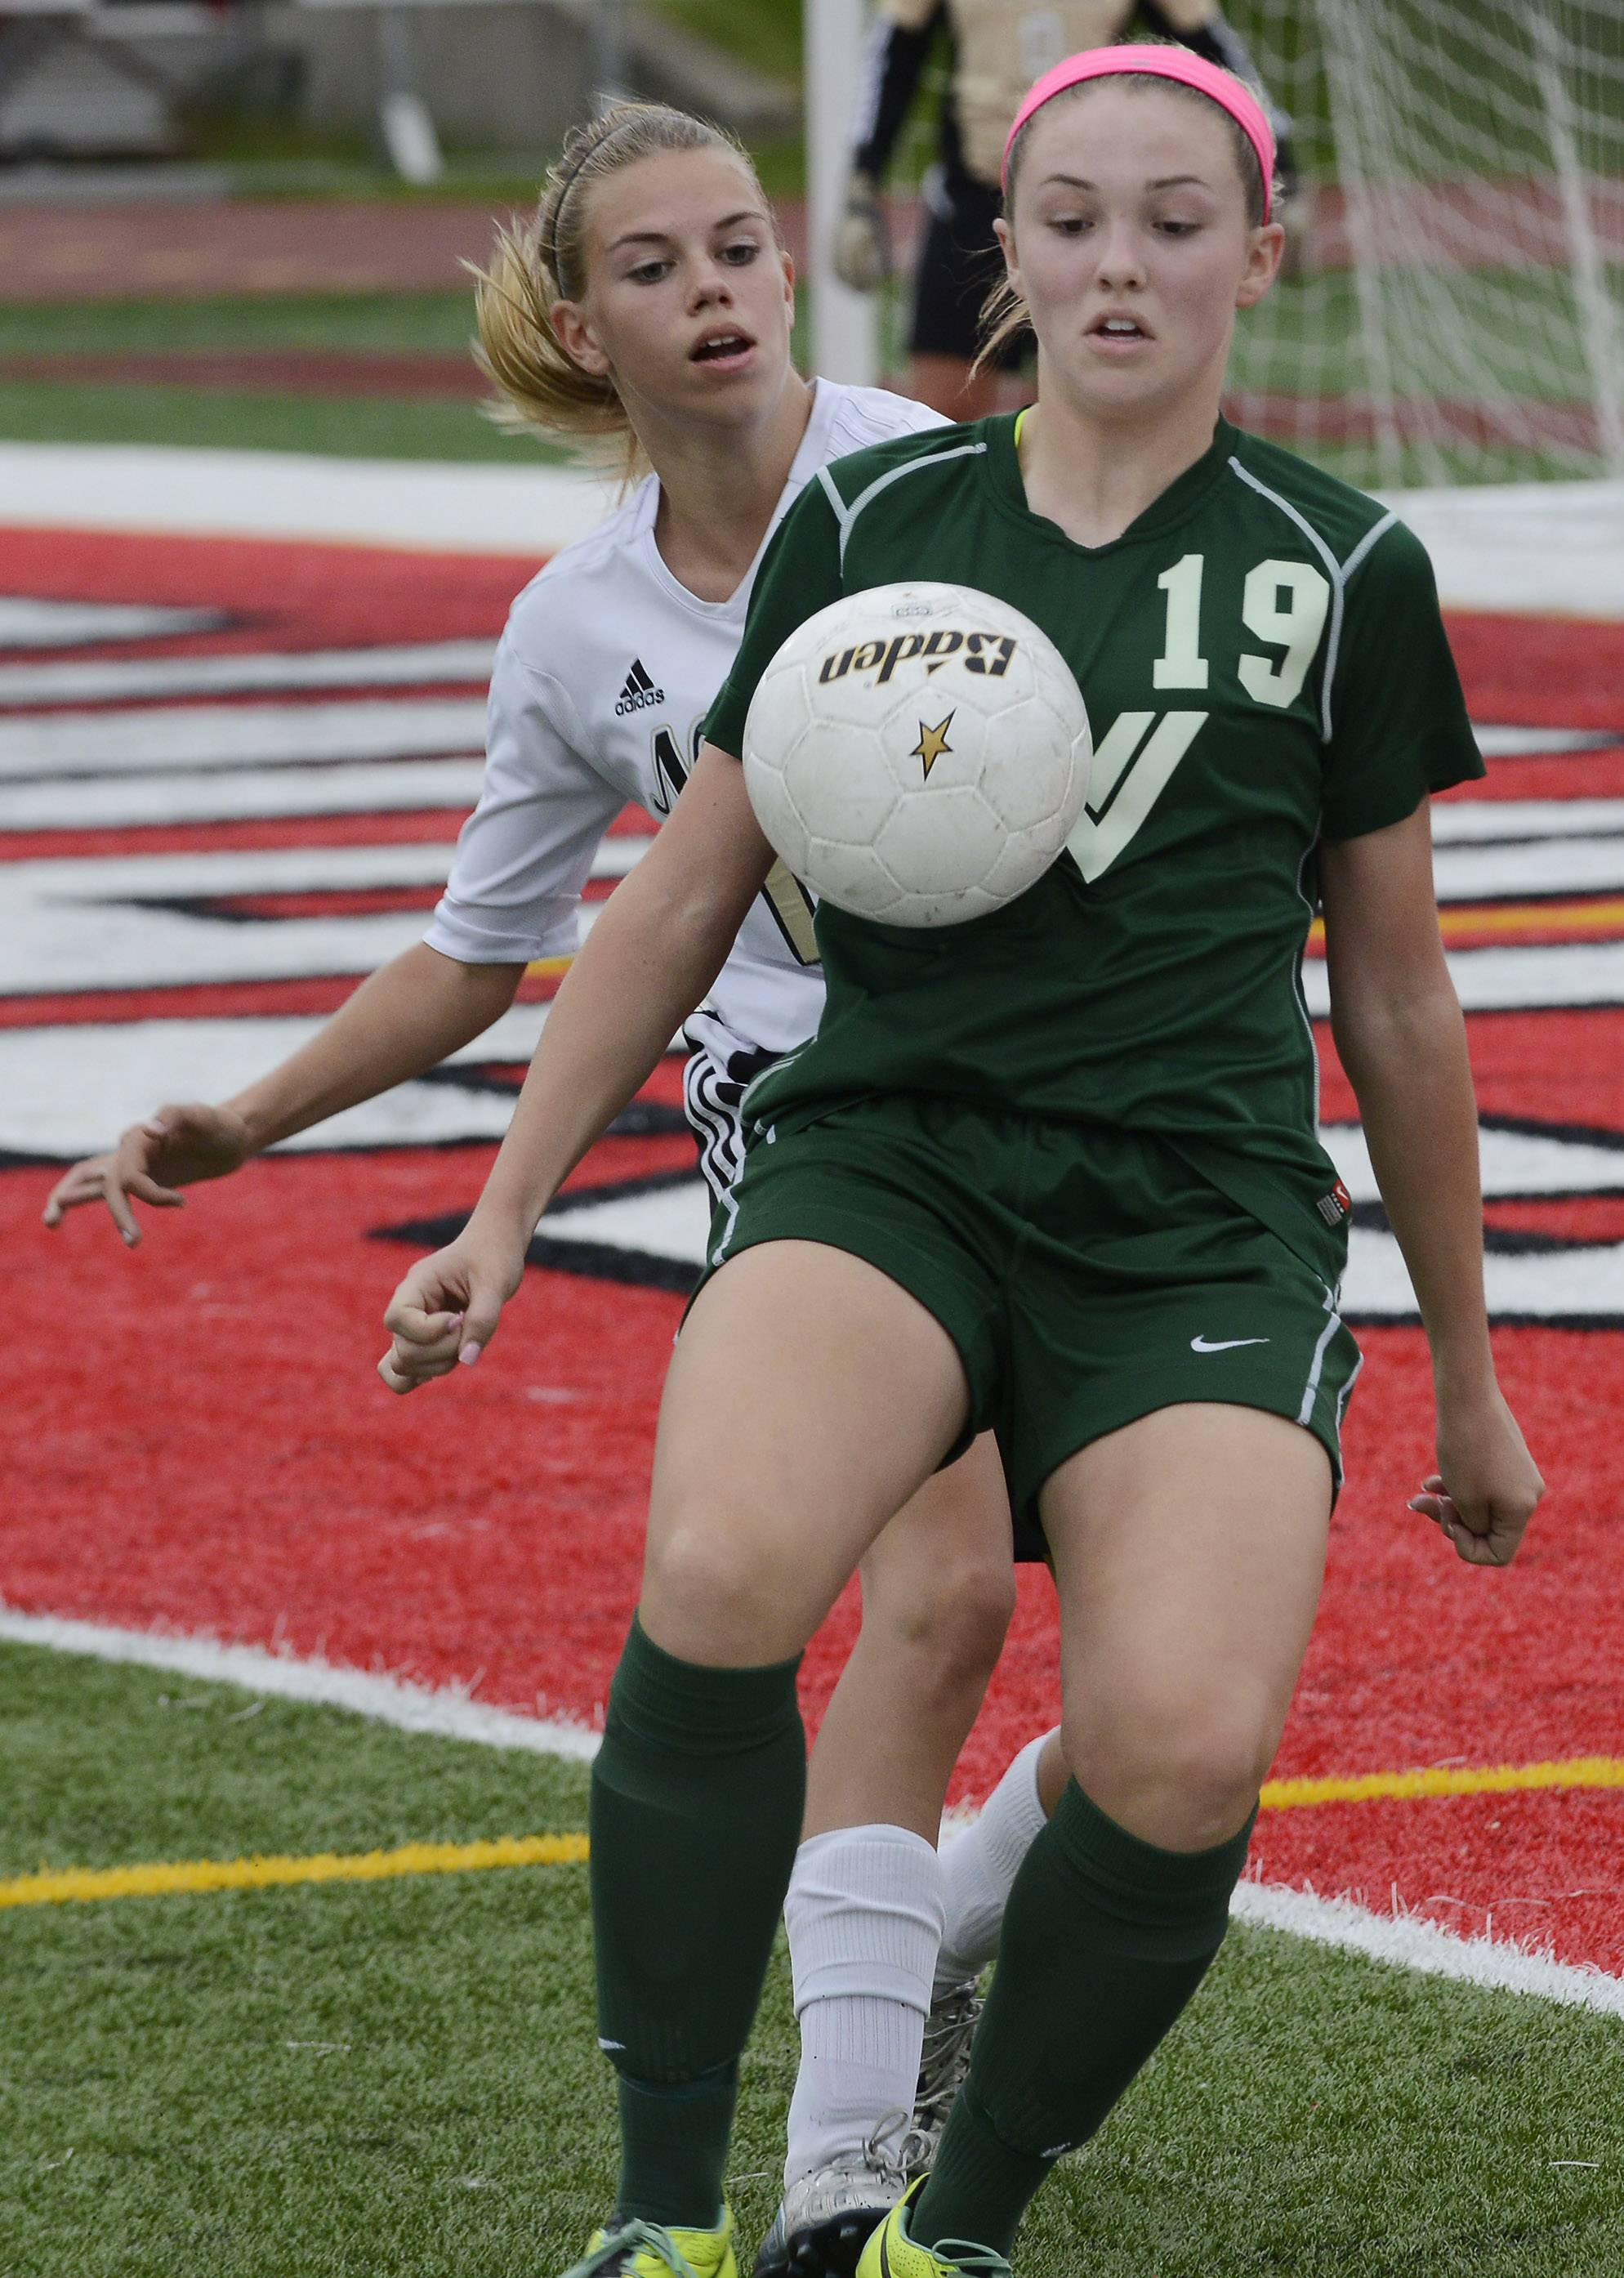 Waubonsie Valley's Maggie Roe controls the ball in front of Lincoln-Way North's Ava Eggert during the Class 3A state third-place game at North Central College in Naperville on Saturday.